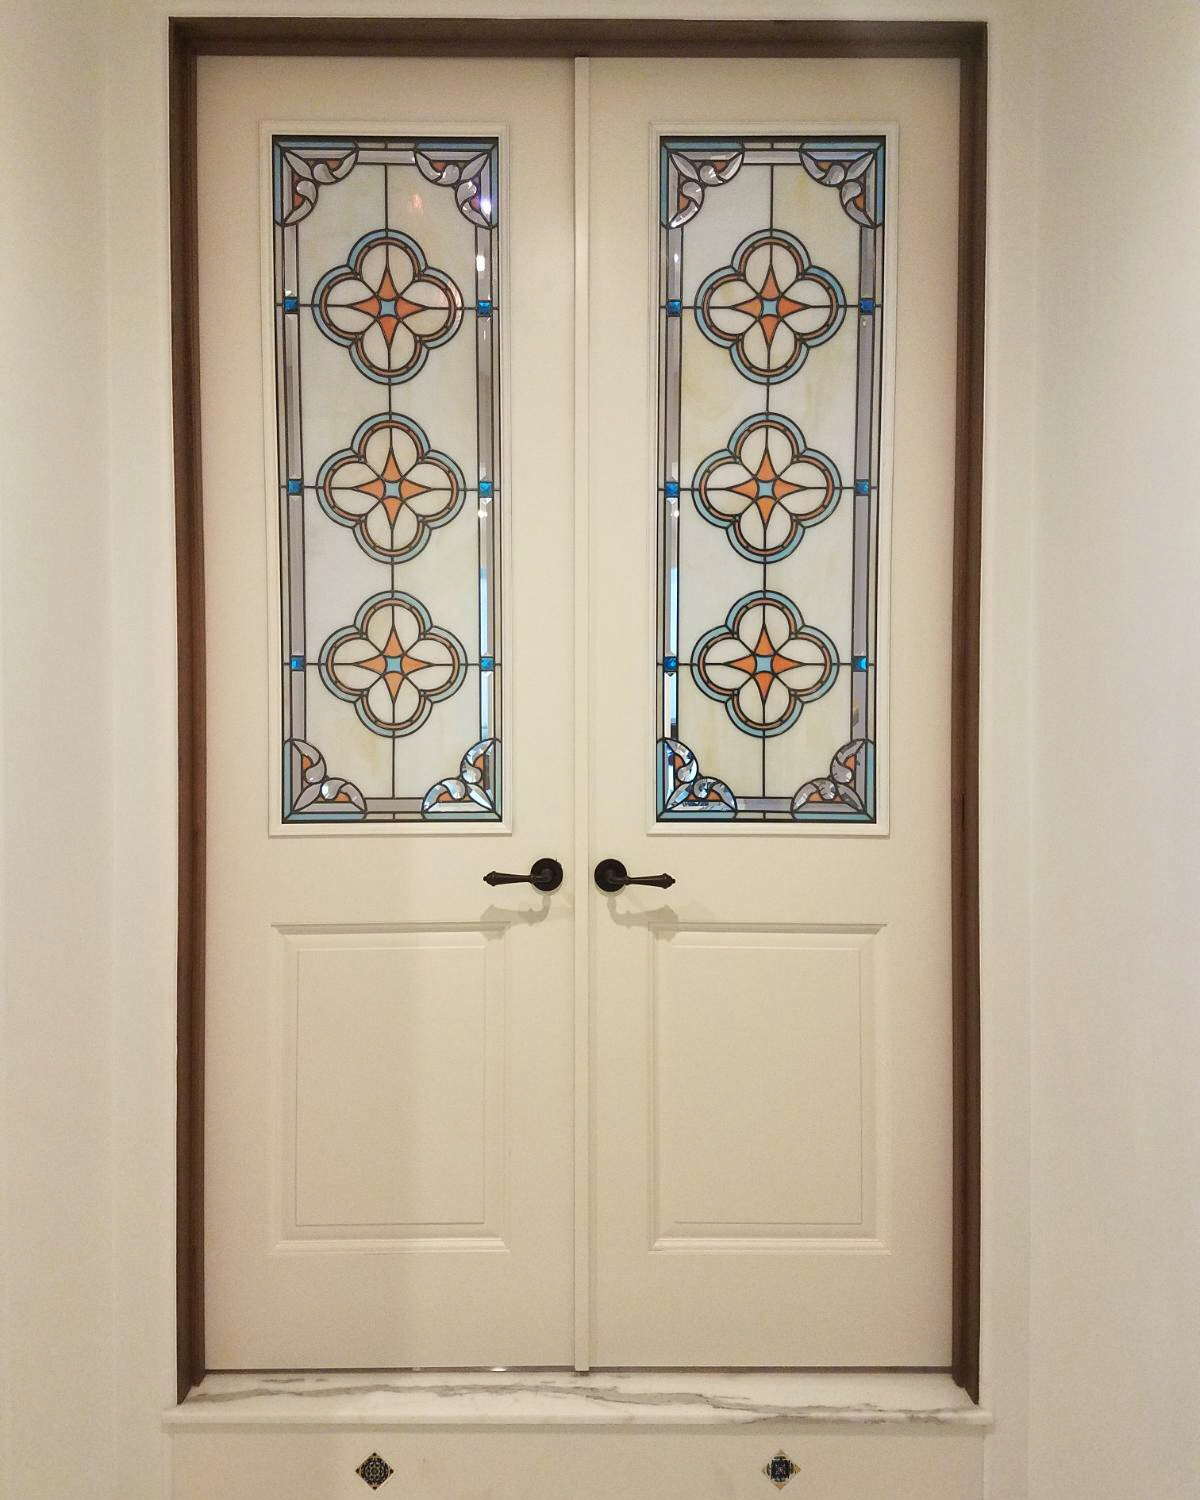 spanish star design quatrefoil traditional french doors leaded glass stained glass insulated unit art glass custom beveled stained glass legacy glass studios palo alto california home renovation.jpg